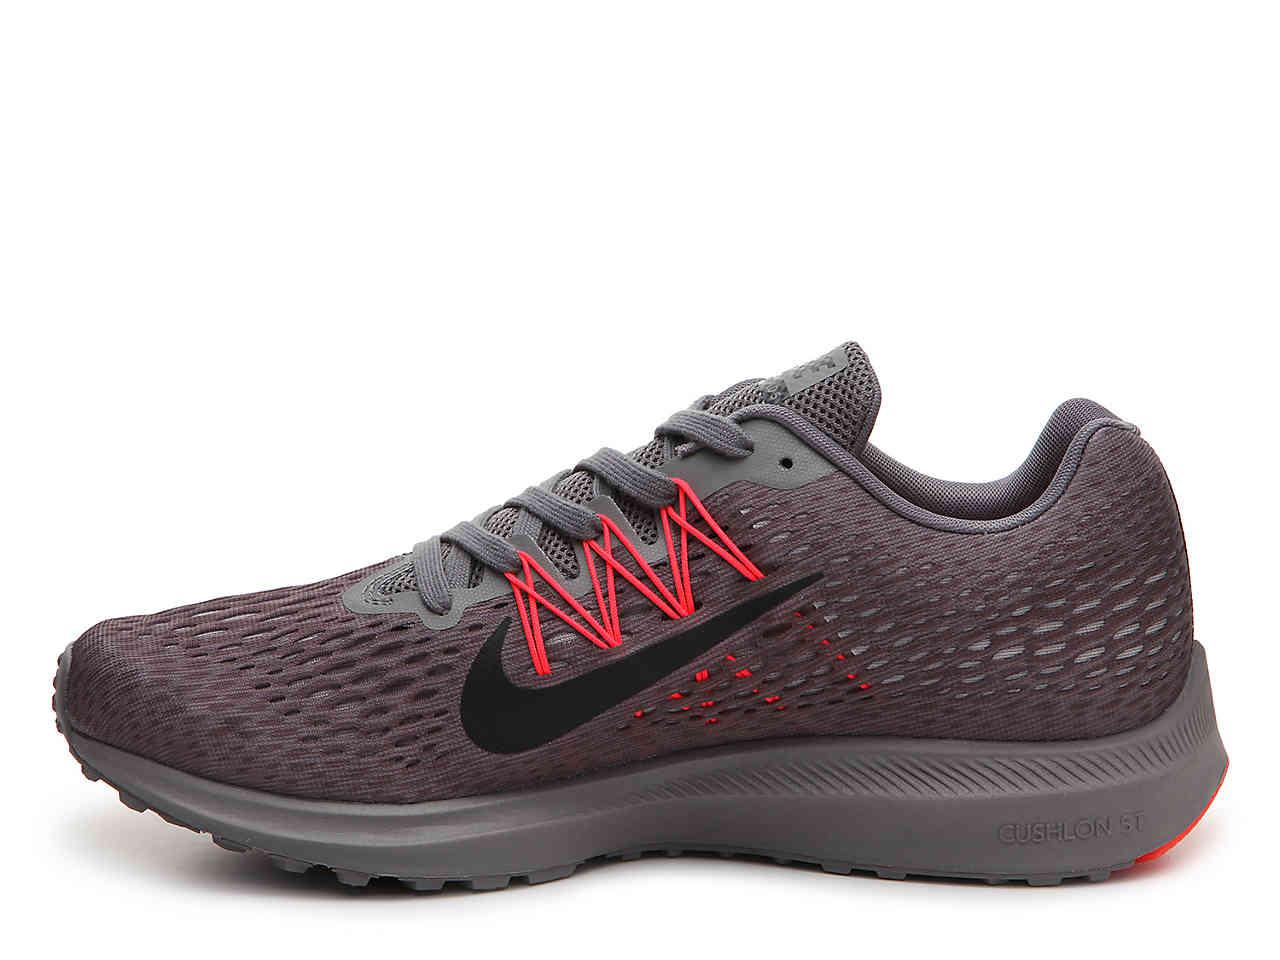 on sale 12cd1 2909d wholesale lyst nike zoom winflo 5 lightweight running shoe in gray for men  227f4 a23ac